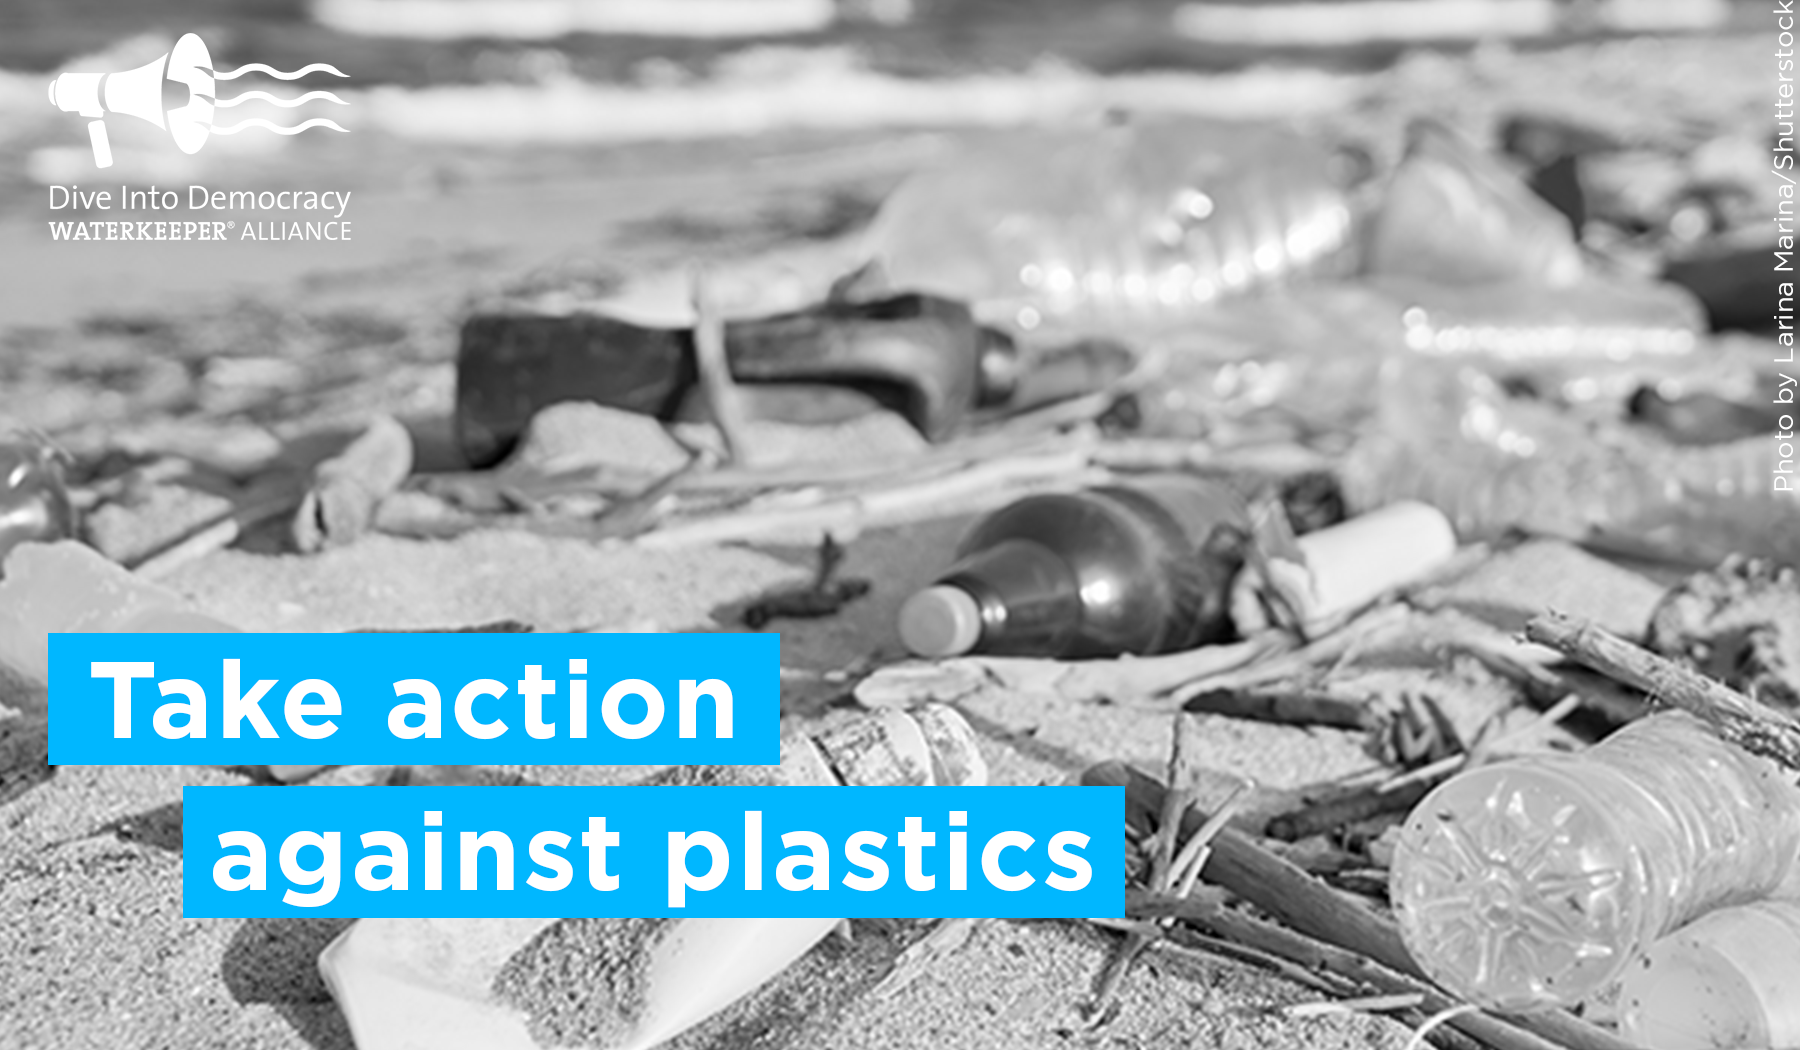 Plastic waste on a beach wtih the text: Take action against plastics